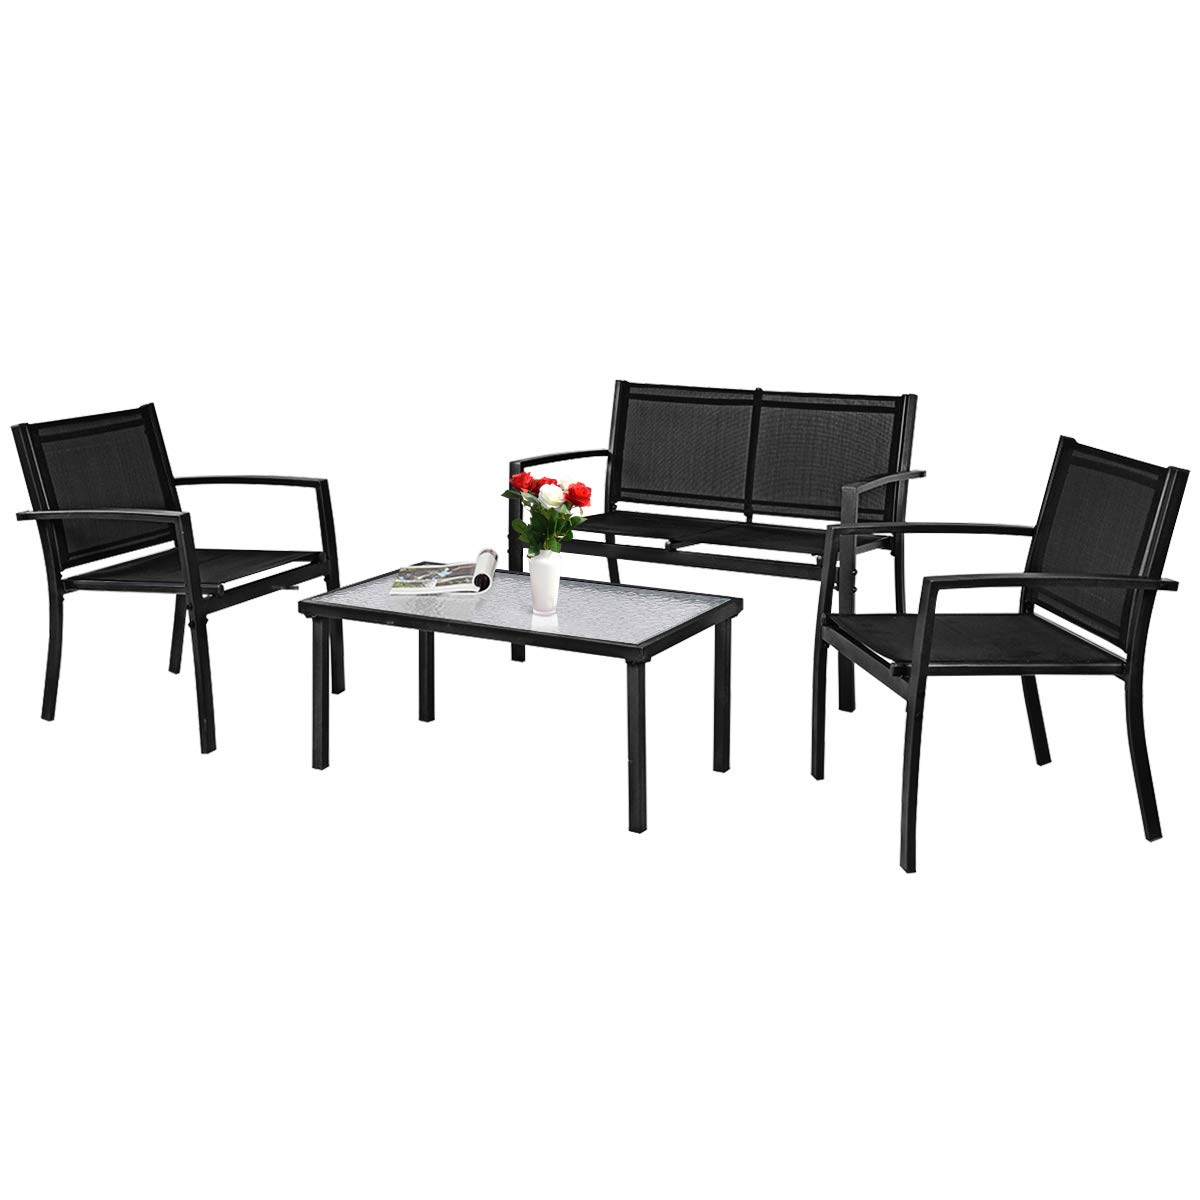 Tangkula Patio Furniture Set 4 PCS, Tempered Glass Coffee Table Loveseat for Backyard Lawn Pool Balcony, Sturdy Armrests for Relaxing, Patio Conversation Set